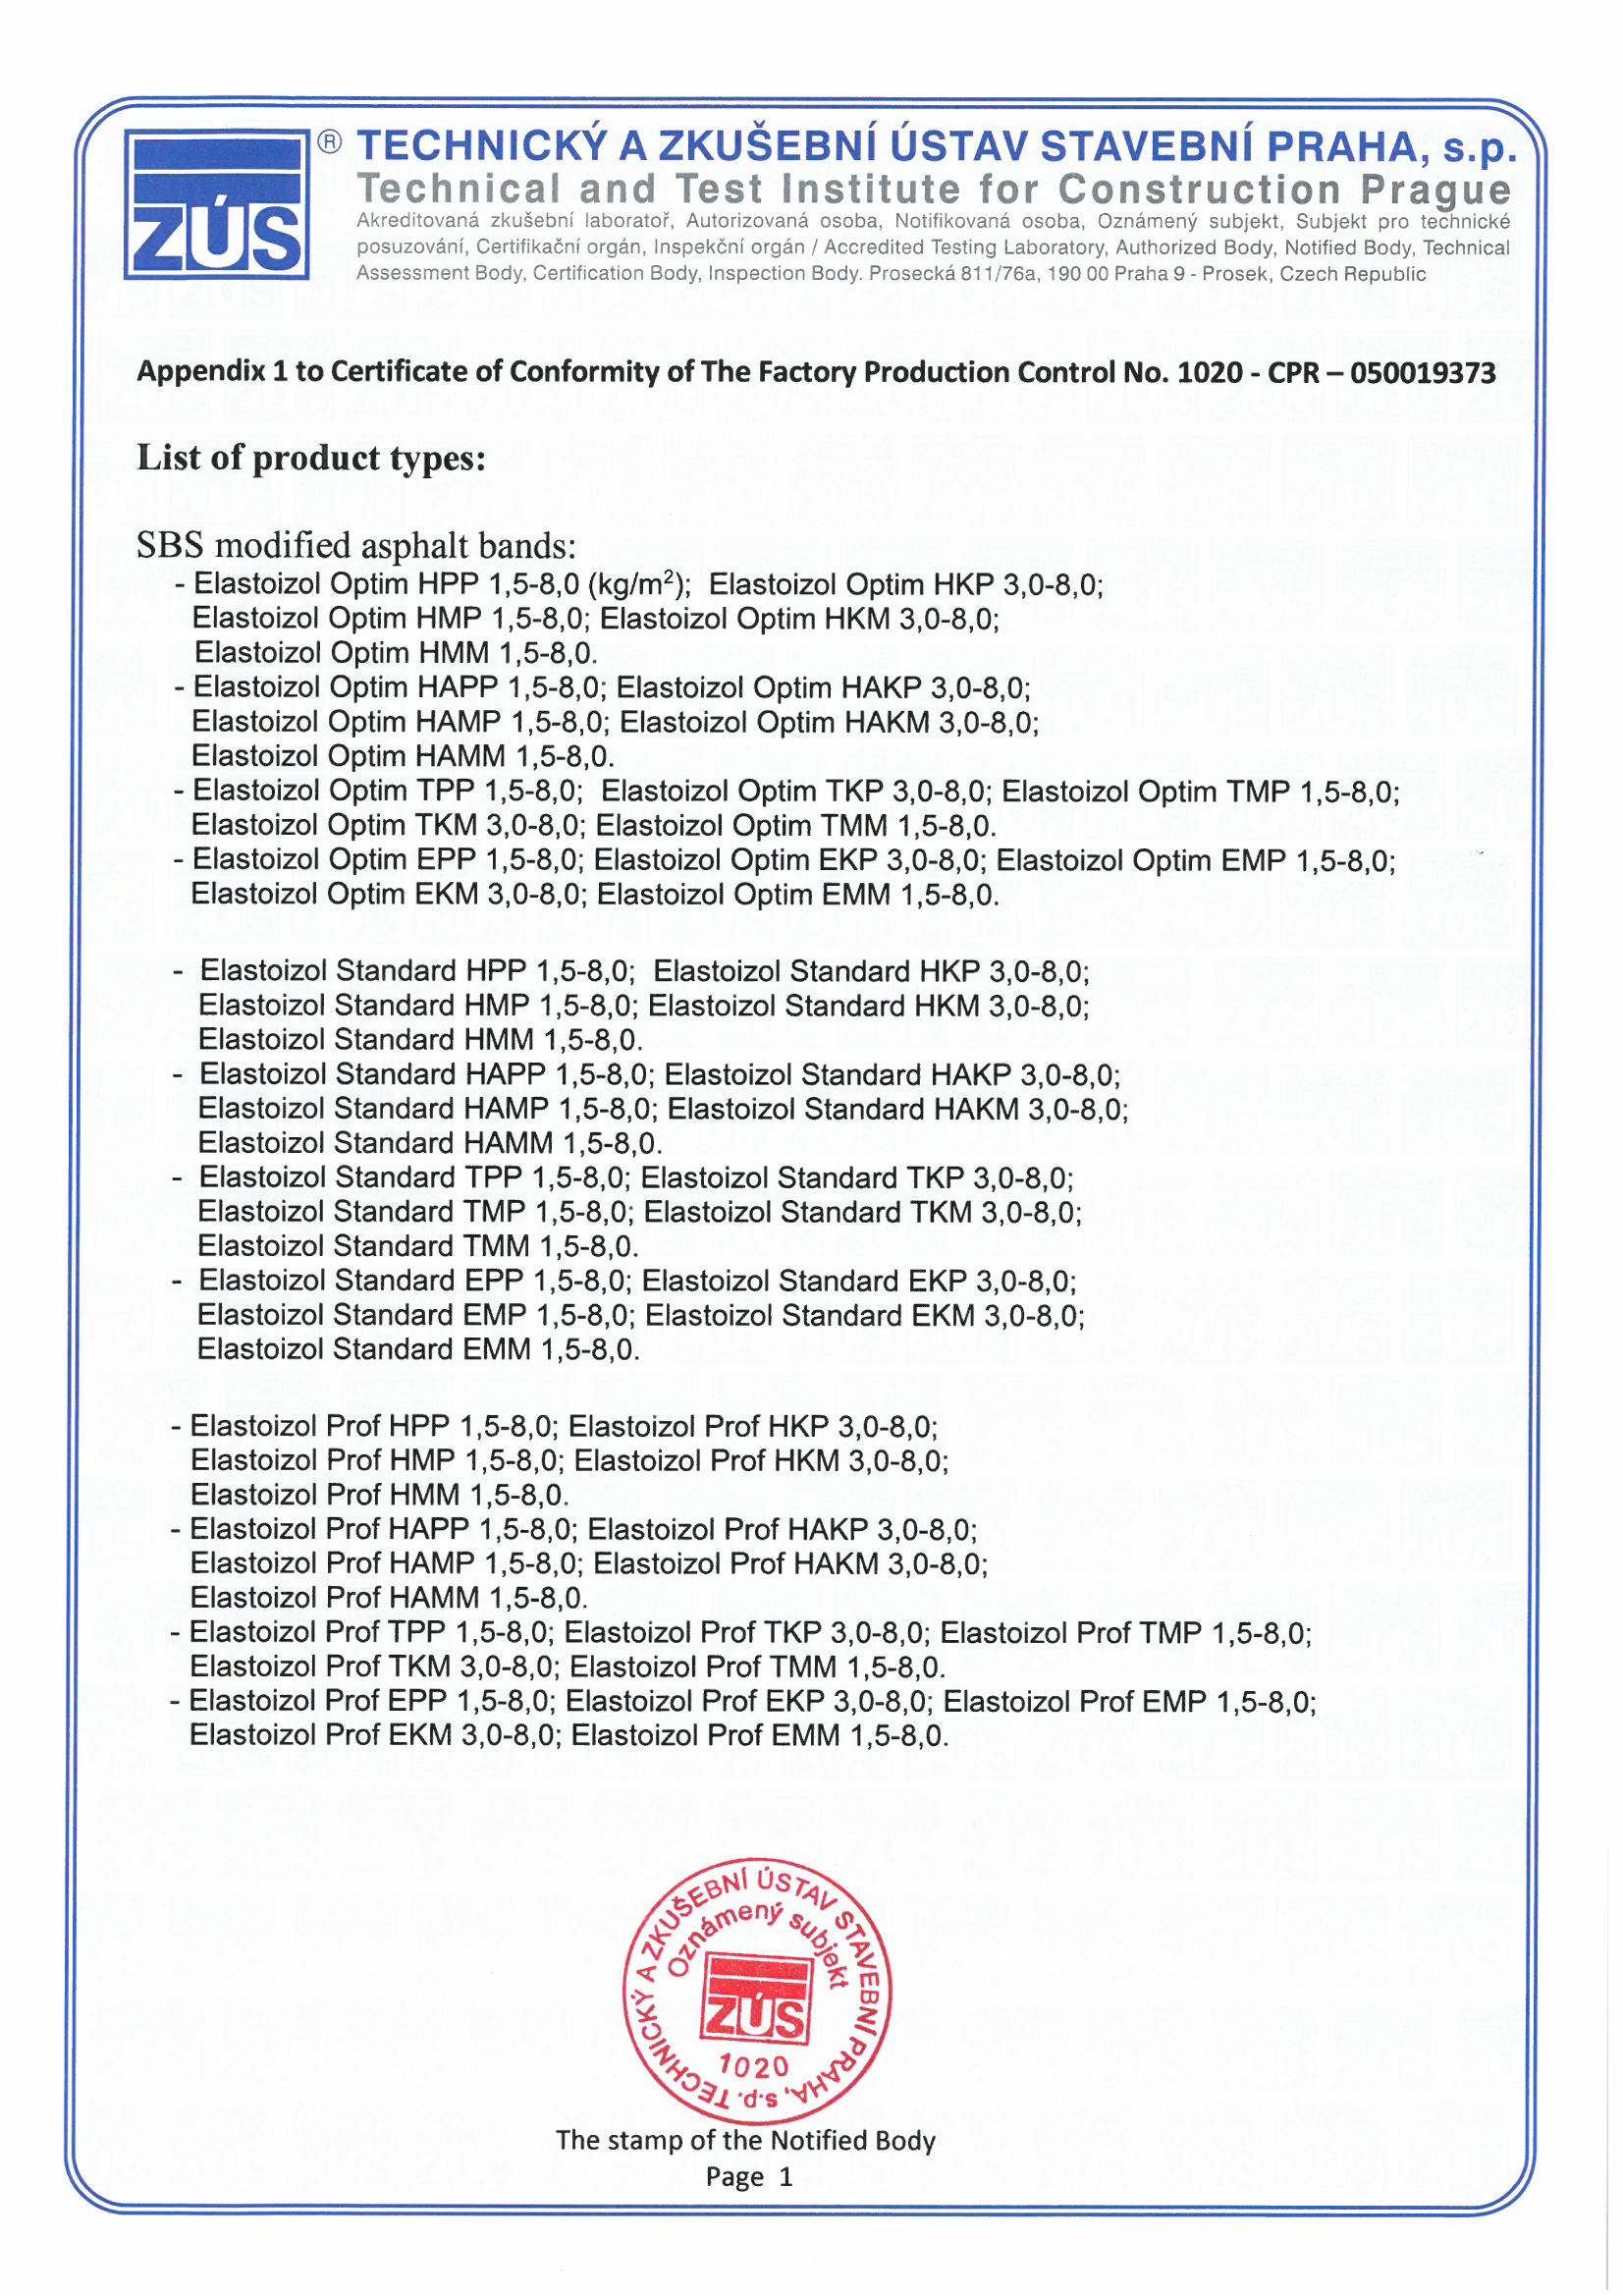 CE for elastoizol page 2